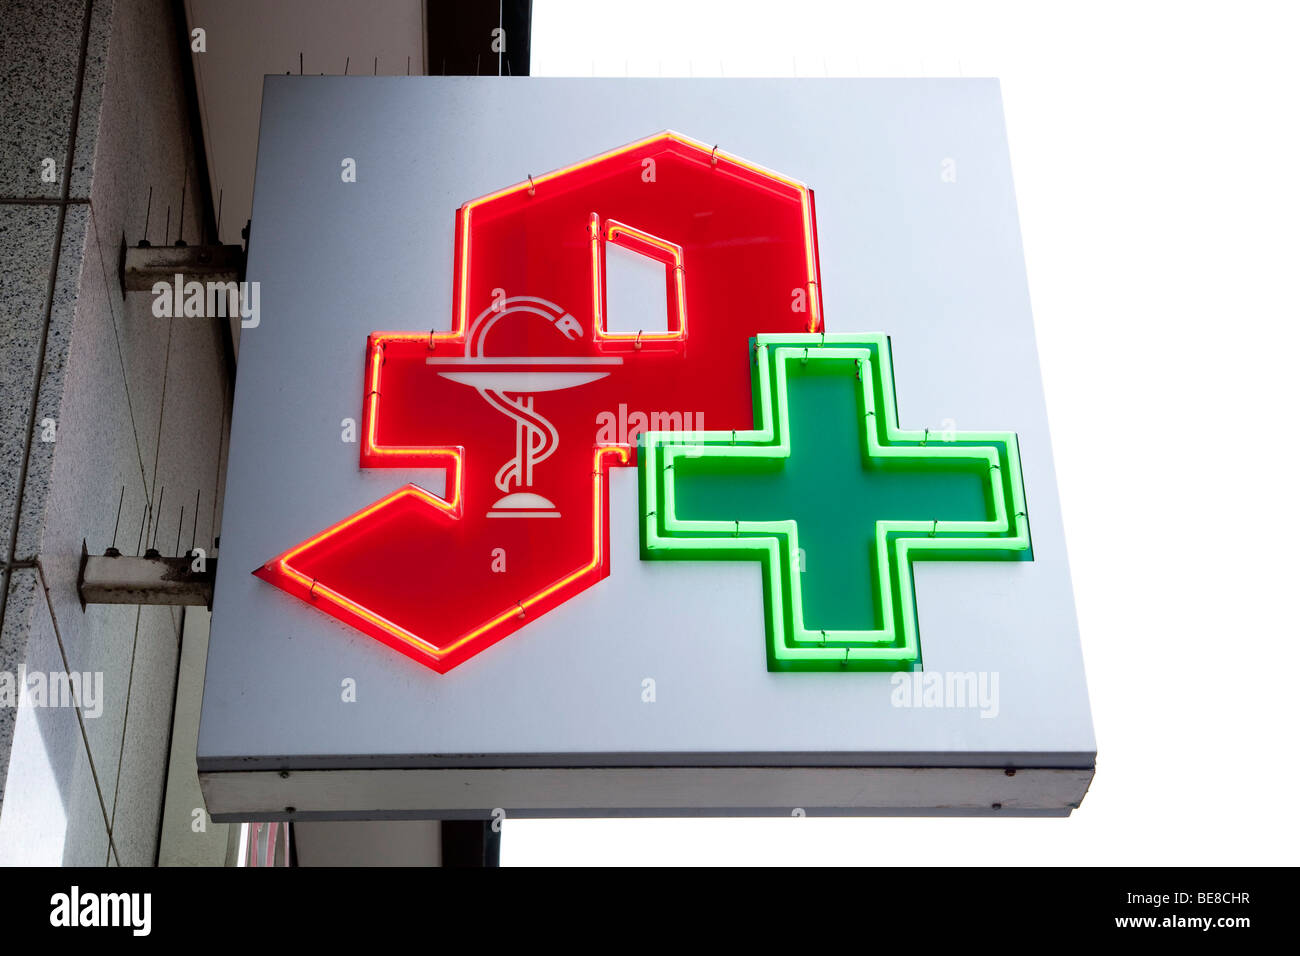 Pharmacy sign with logo and green cross - Stock Image